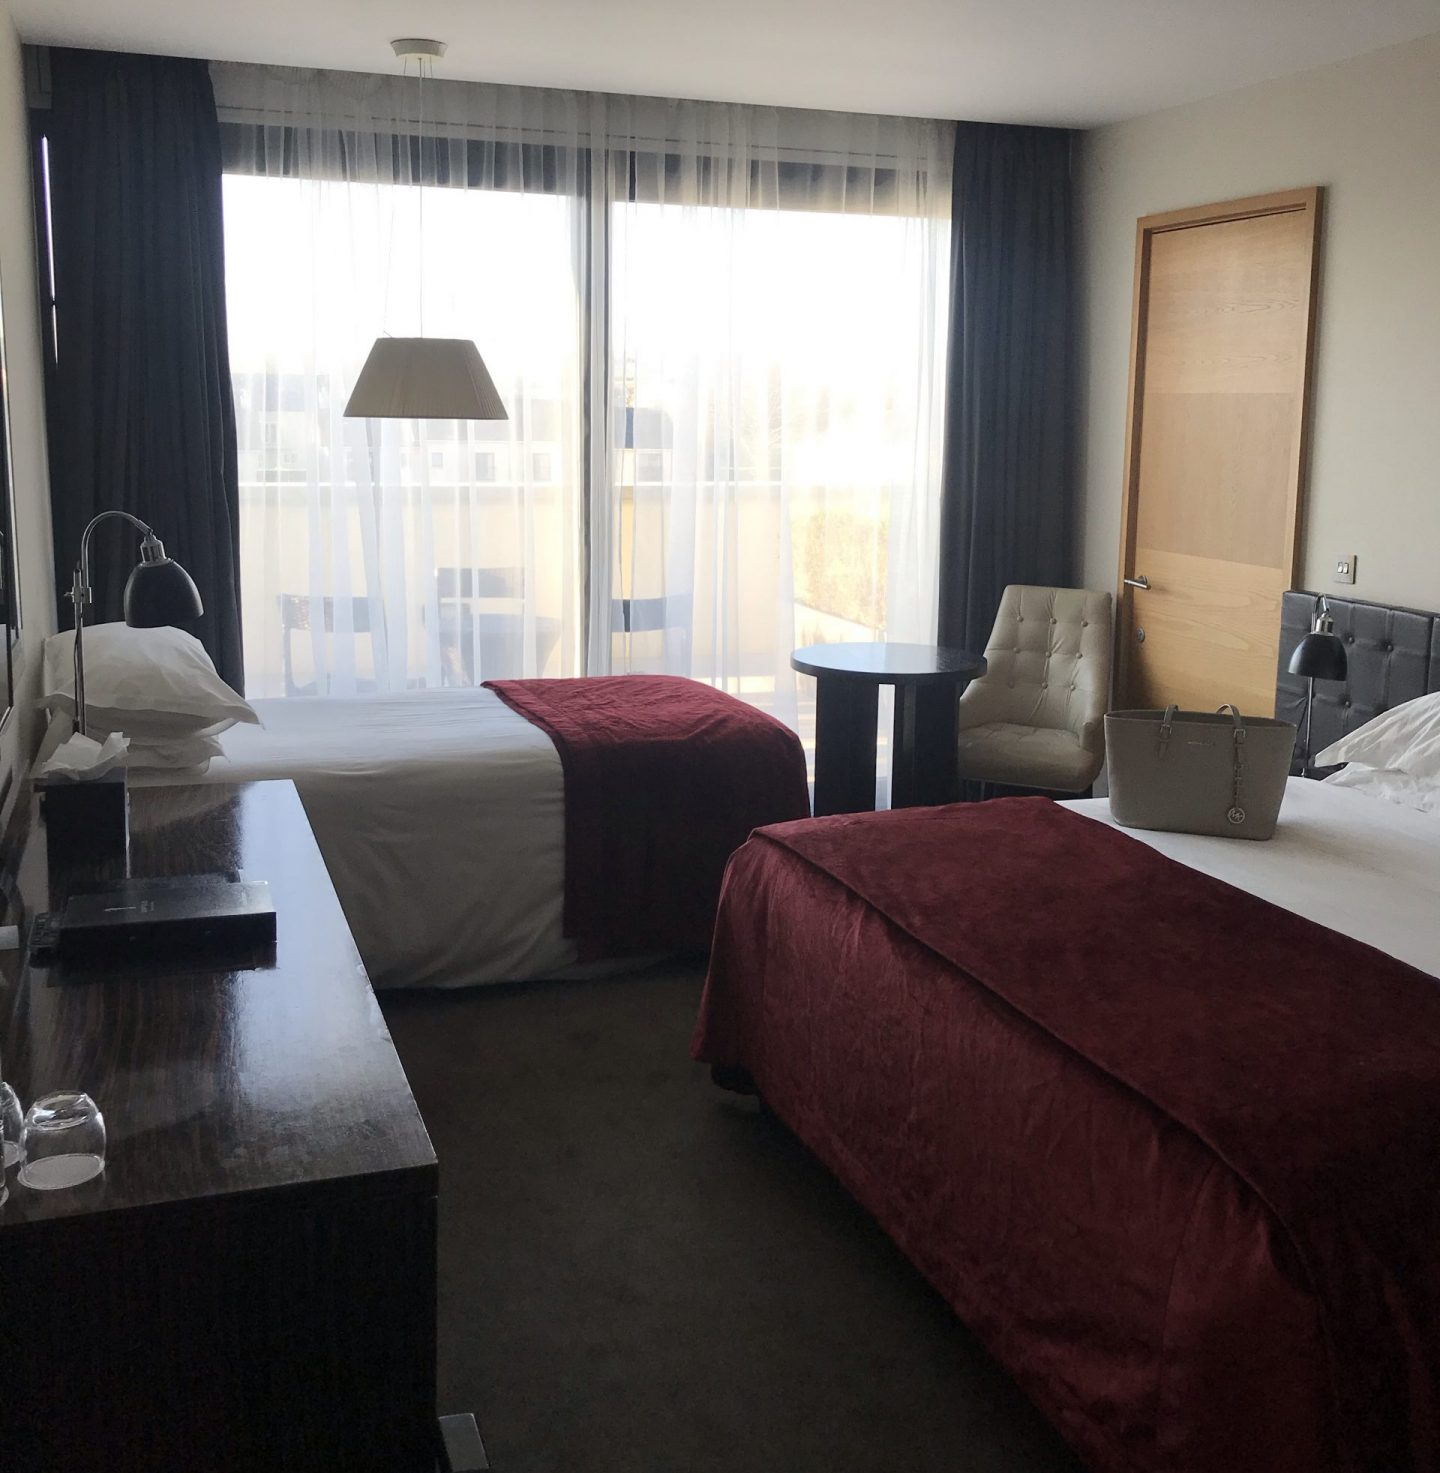 seafield hotel twin room